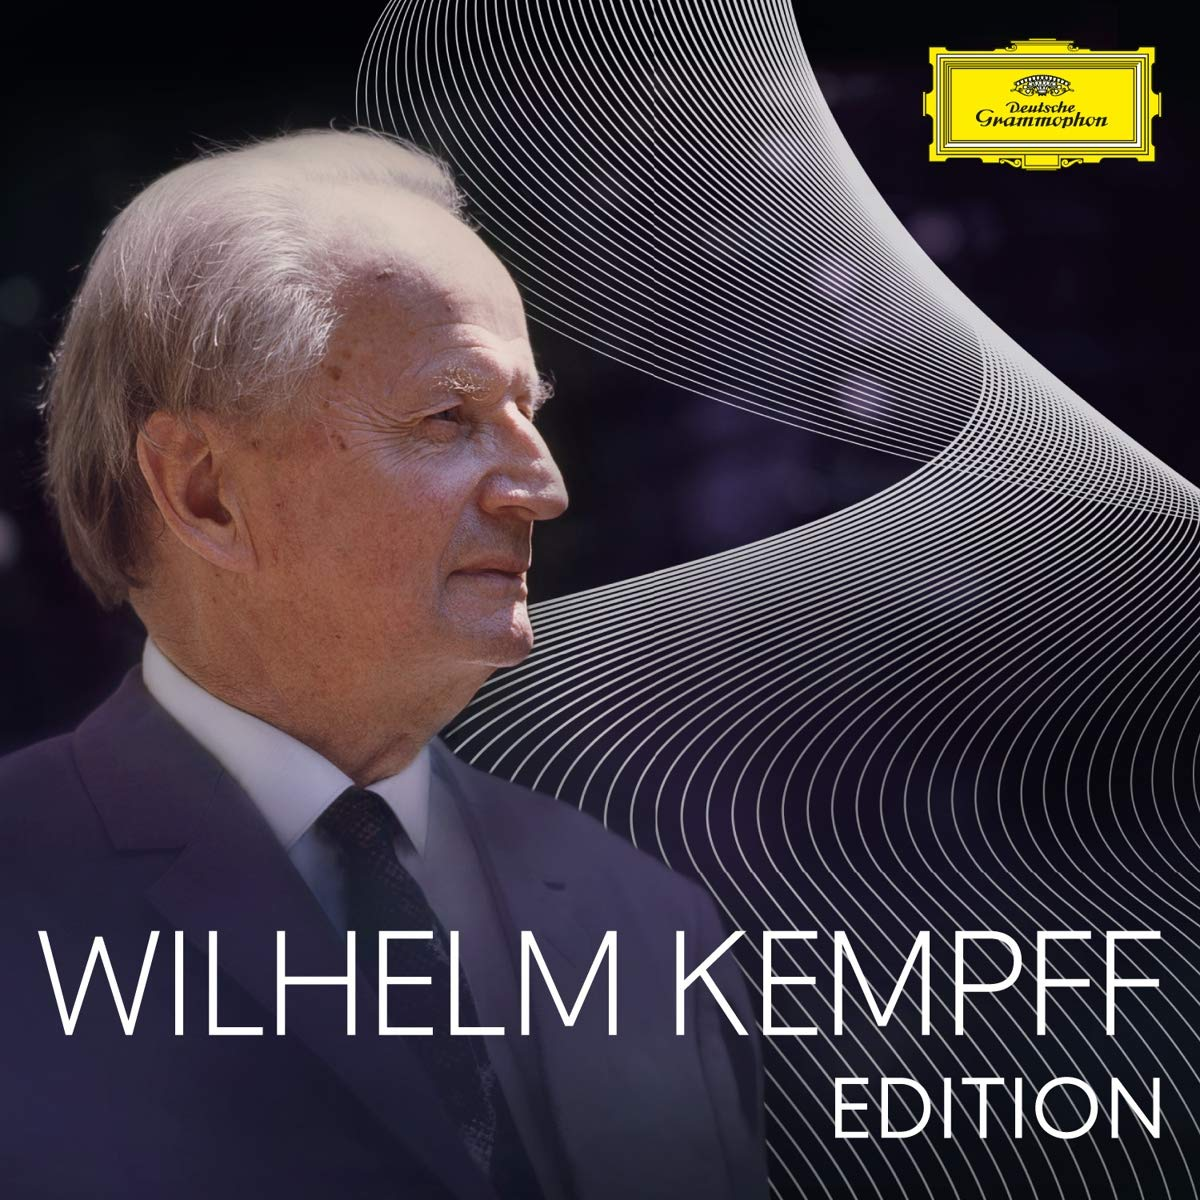 Wilhelm Kempff - Wilhelm Kempff Edition [80 CD Box Set]